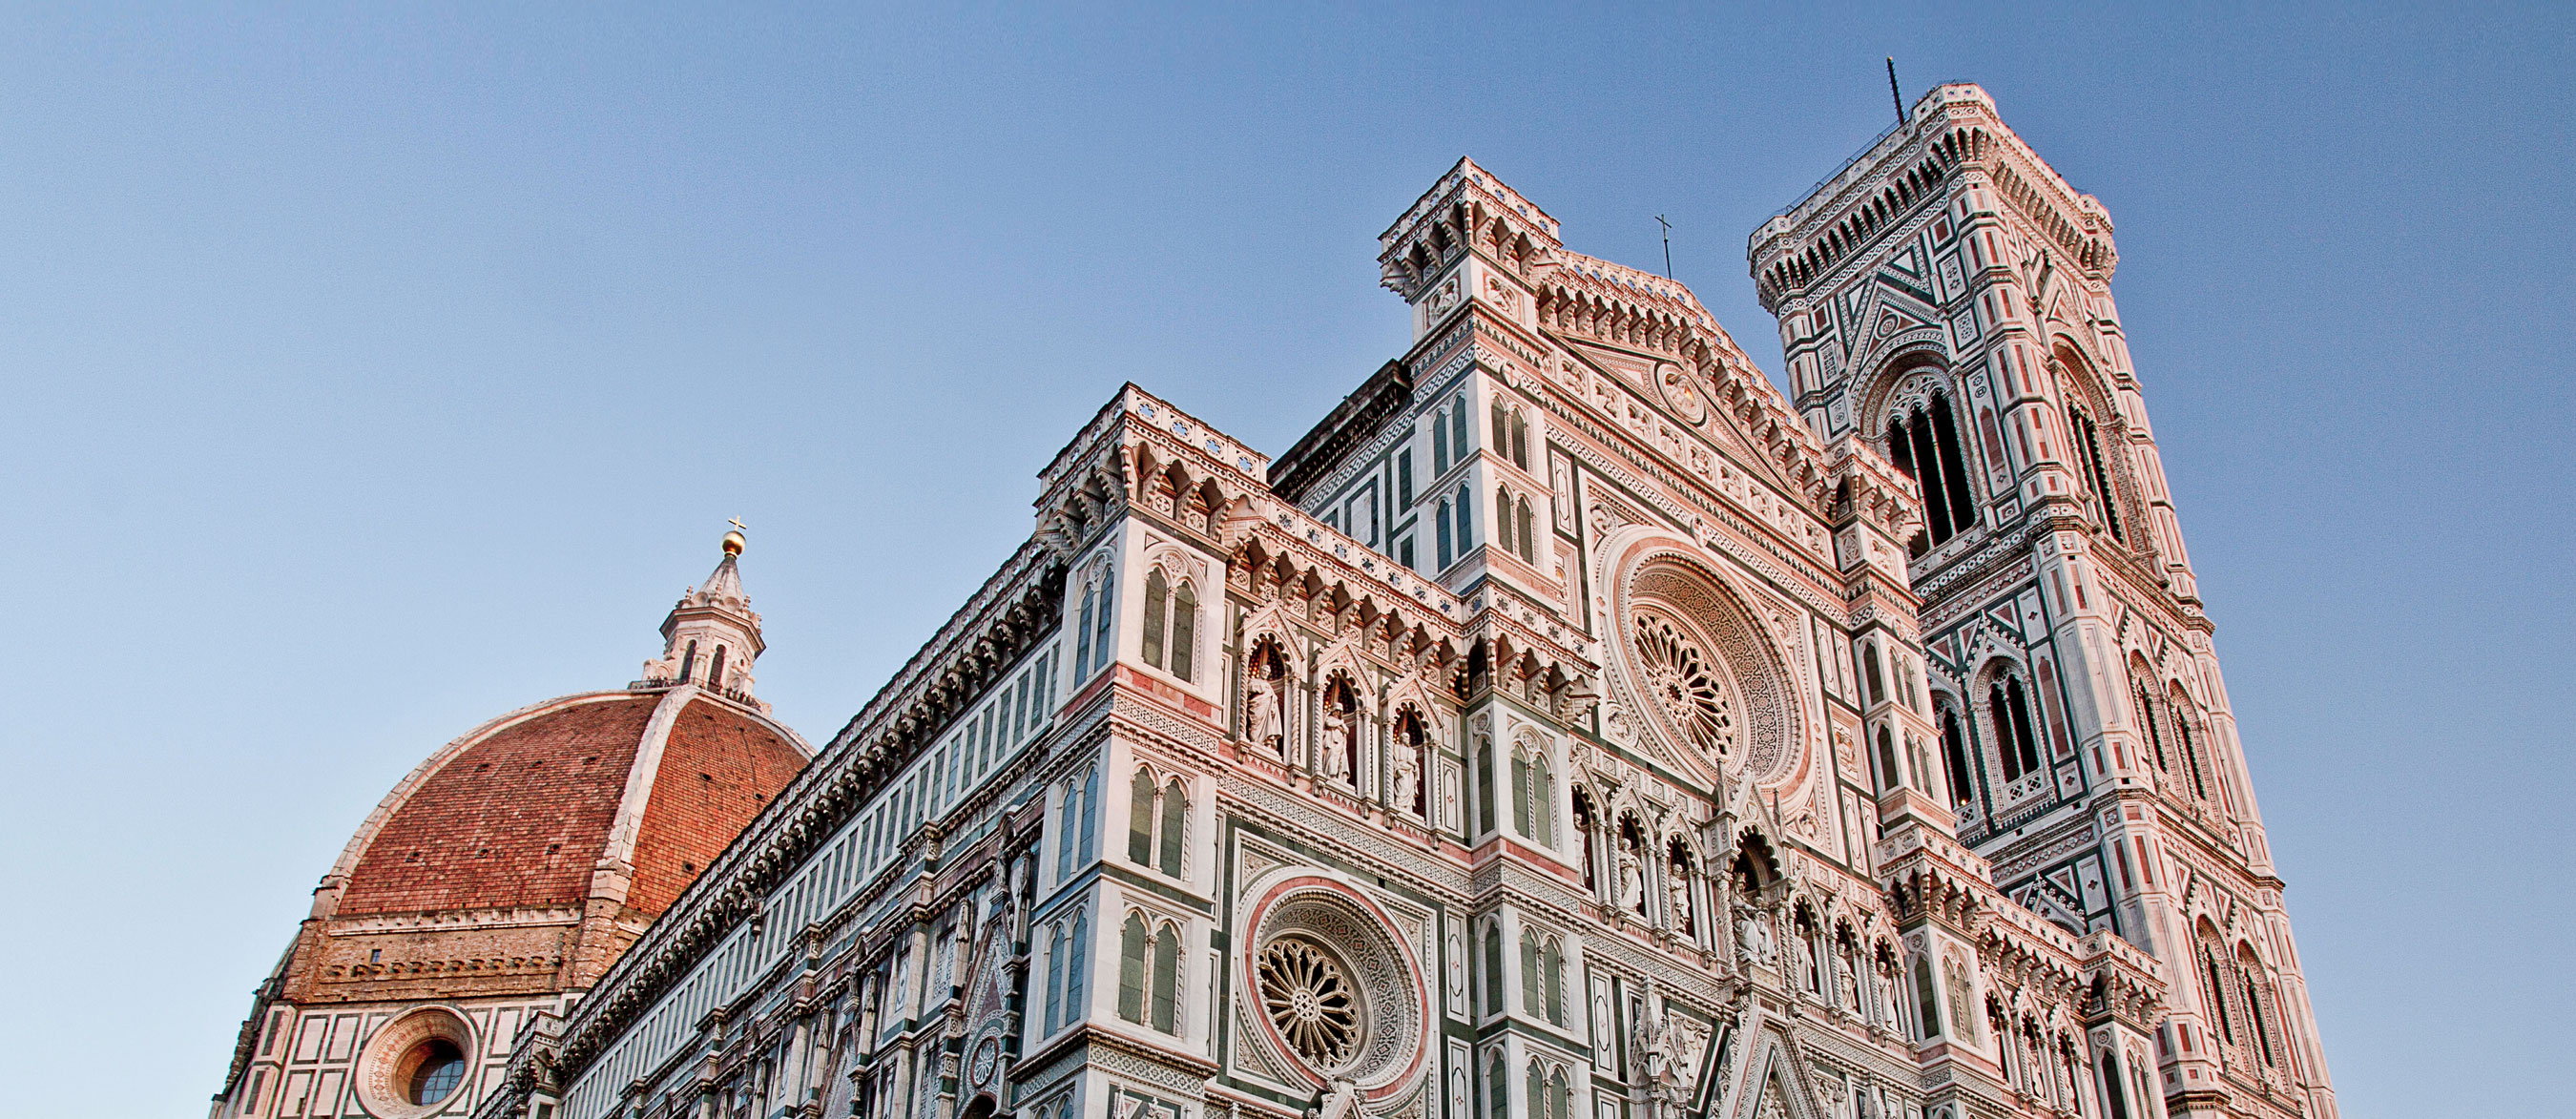 We Can Srl Firenze.Nilhotel Florence